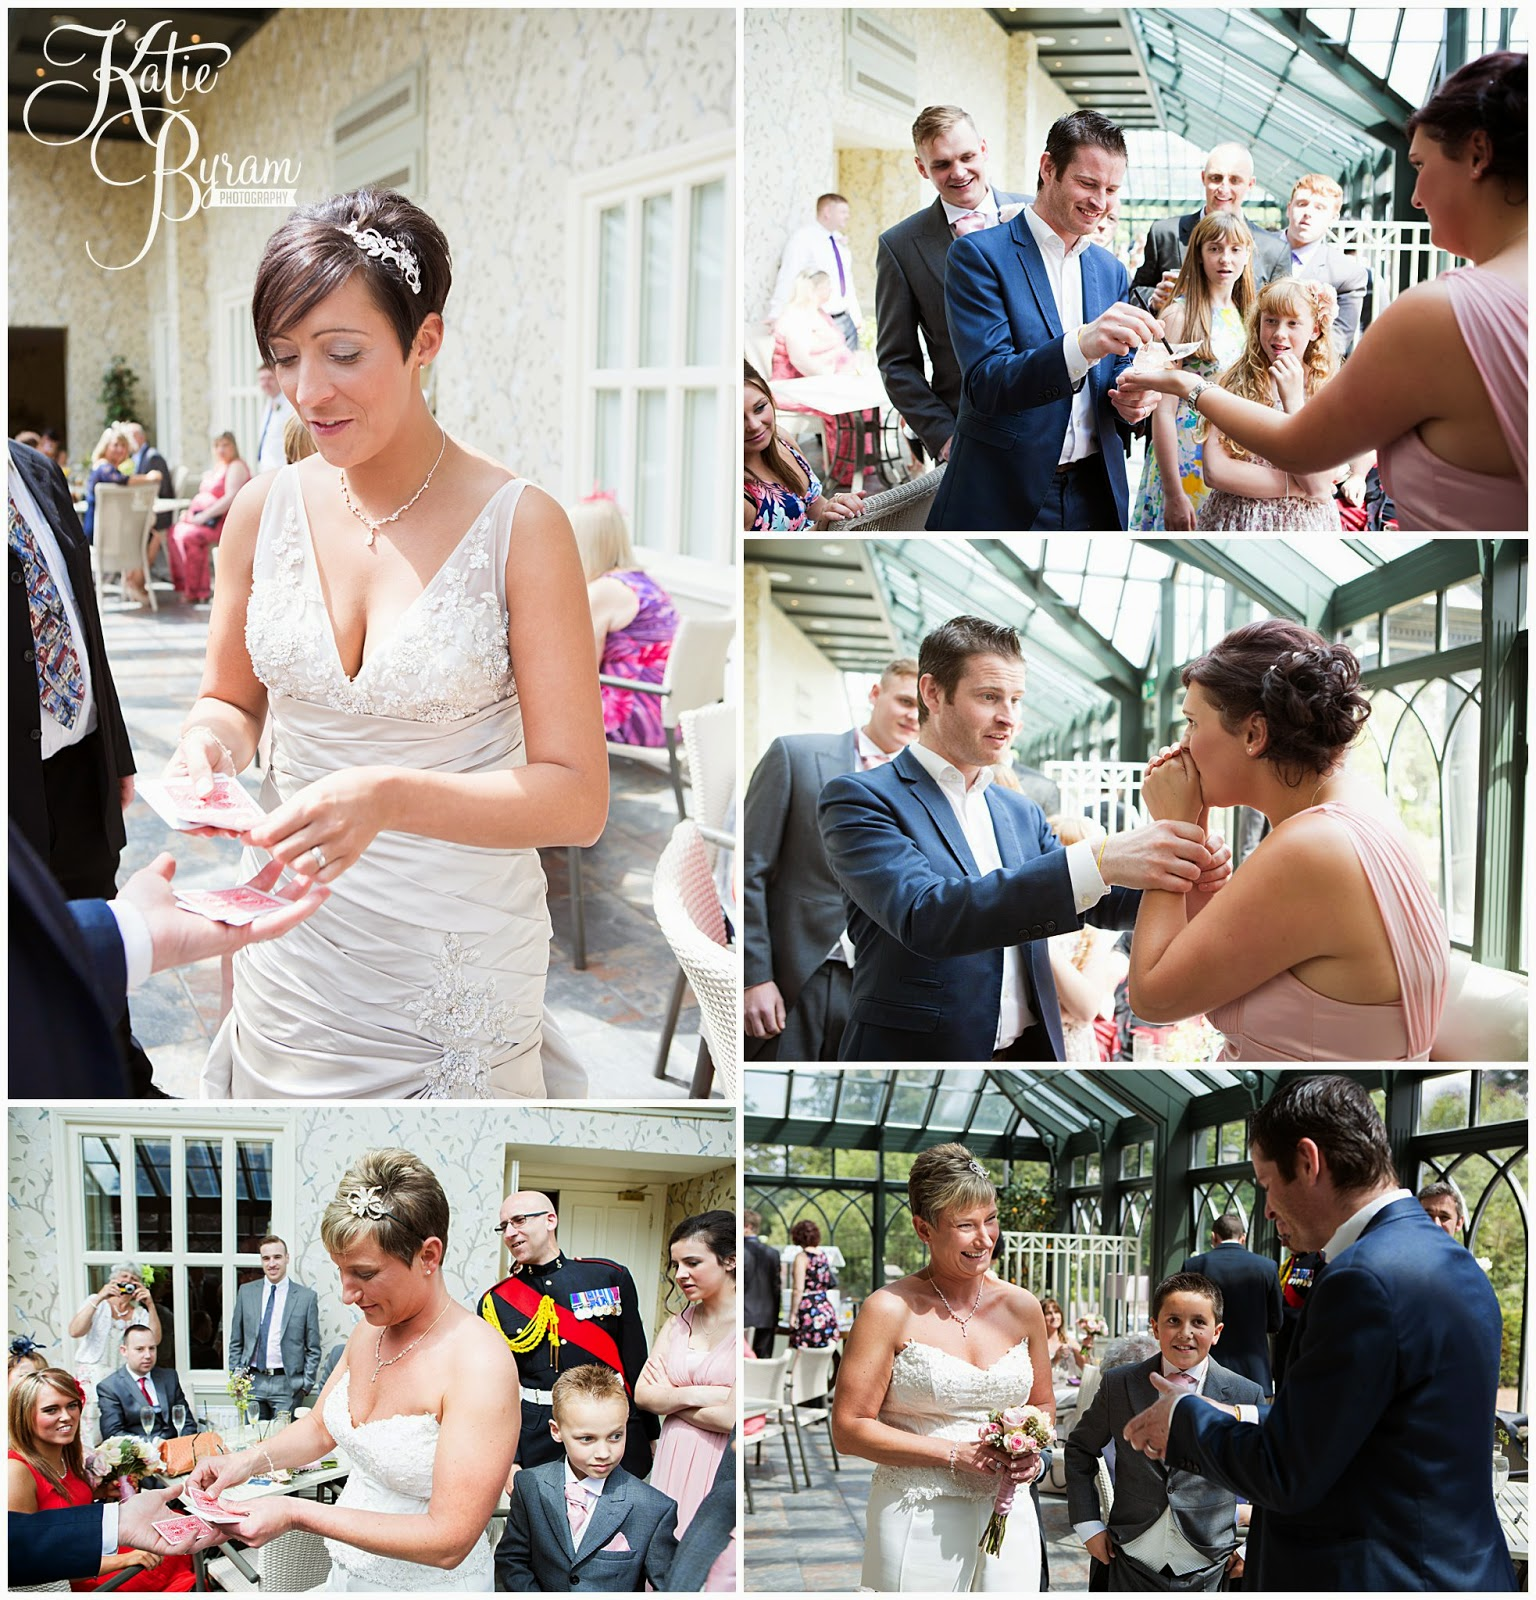 paul lytton wedding magician, two bride wedding, lesbian wedding, lgbt wedding, gisborough hall wedding, north yorkshire wedding photographer, katie byram photographer, same-sex couples, bex bridal, elizabeth george bridal, north yorkshire wedding venues